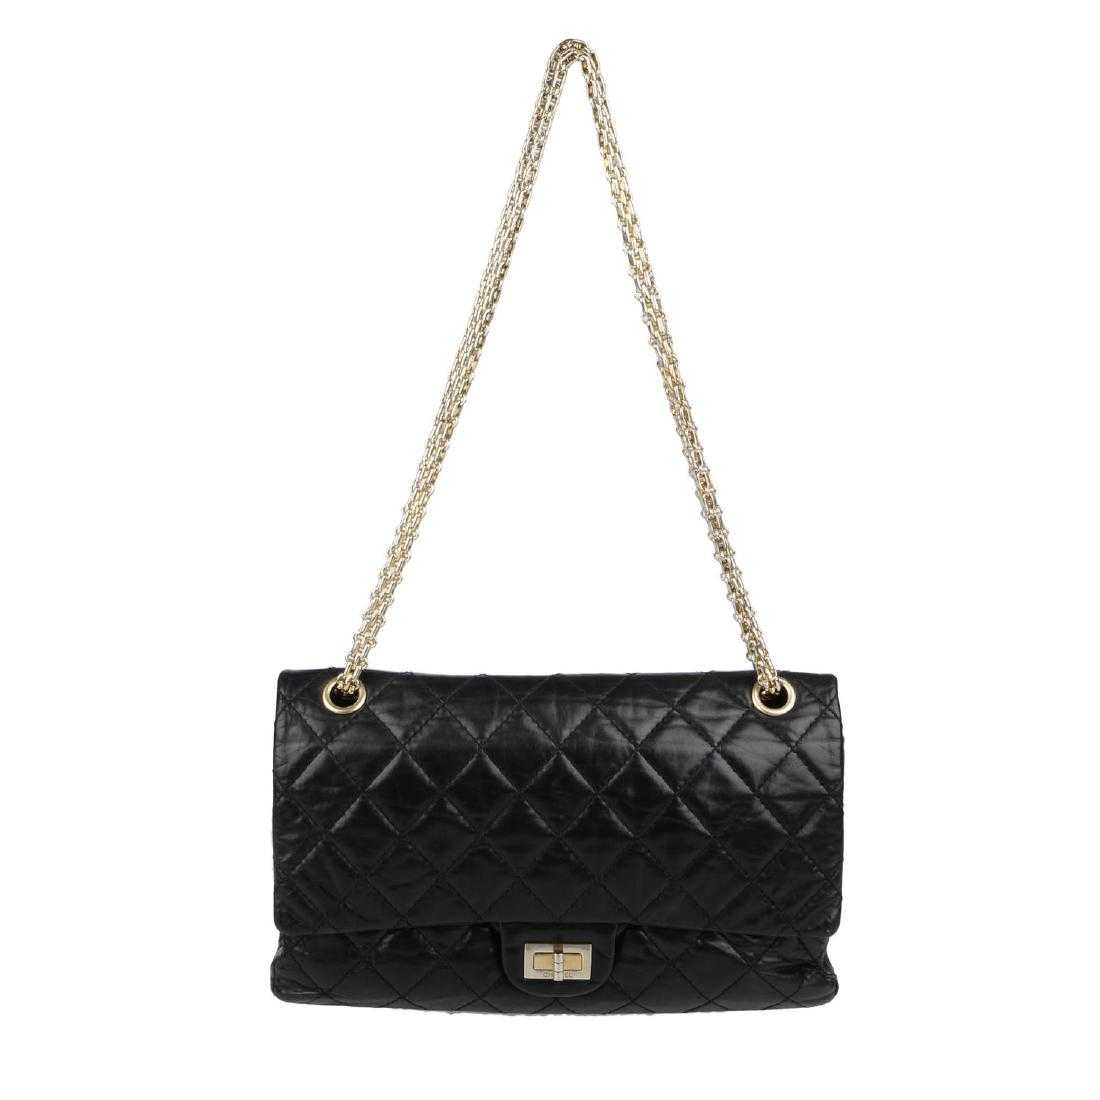 44b280056b1c CHANEL - a Limited 50th Anniversary Edition 2.55